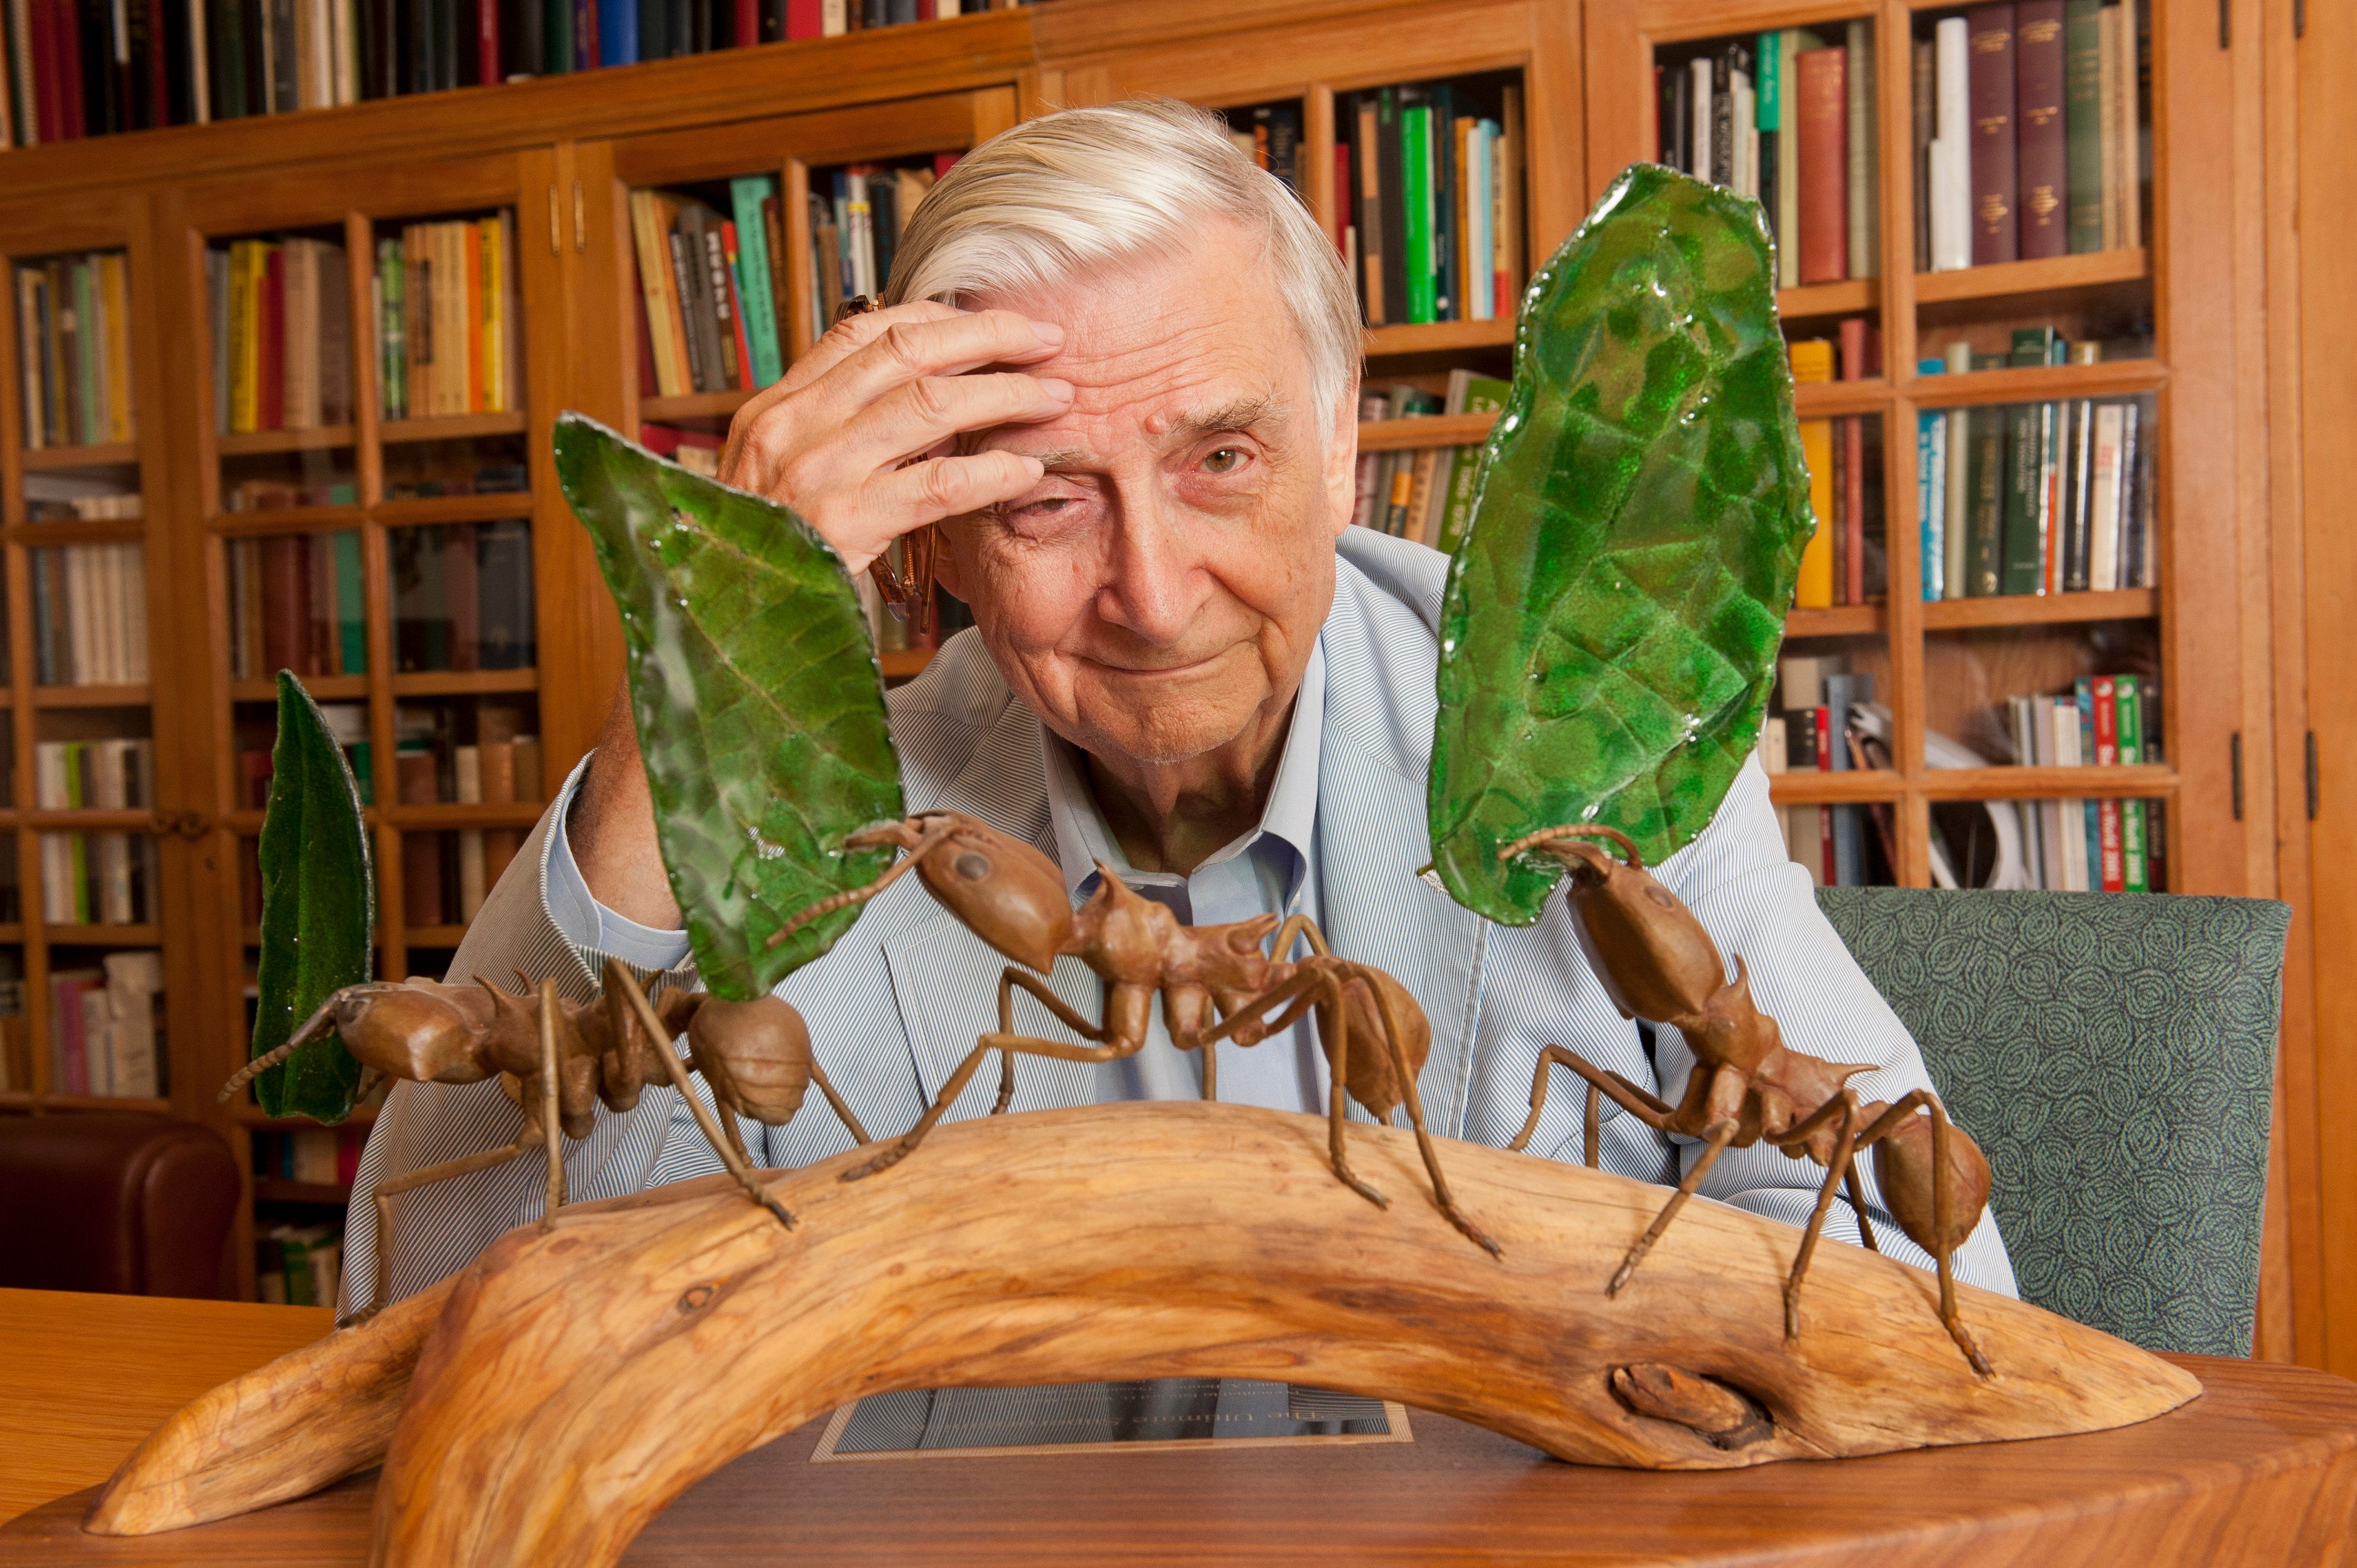 Harvard University Professor E.O. Wilson in his office at Harvard University in Cambridge, MA. USA. Professor Wilson is a biologist, researcher, theorist, naturalist and author. He is considered to be the world's leading authority on the study of ants. (Photo by Rick Friedman/Corbis via Getty Images)